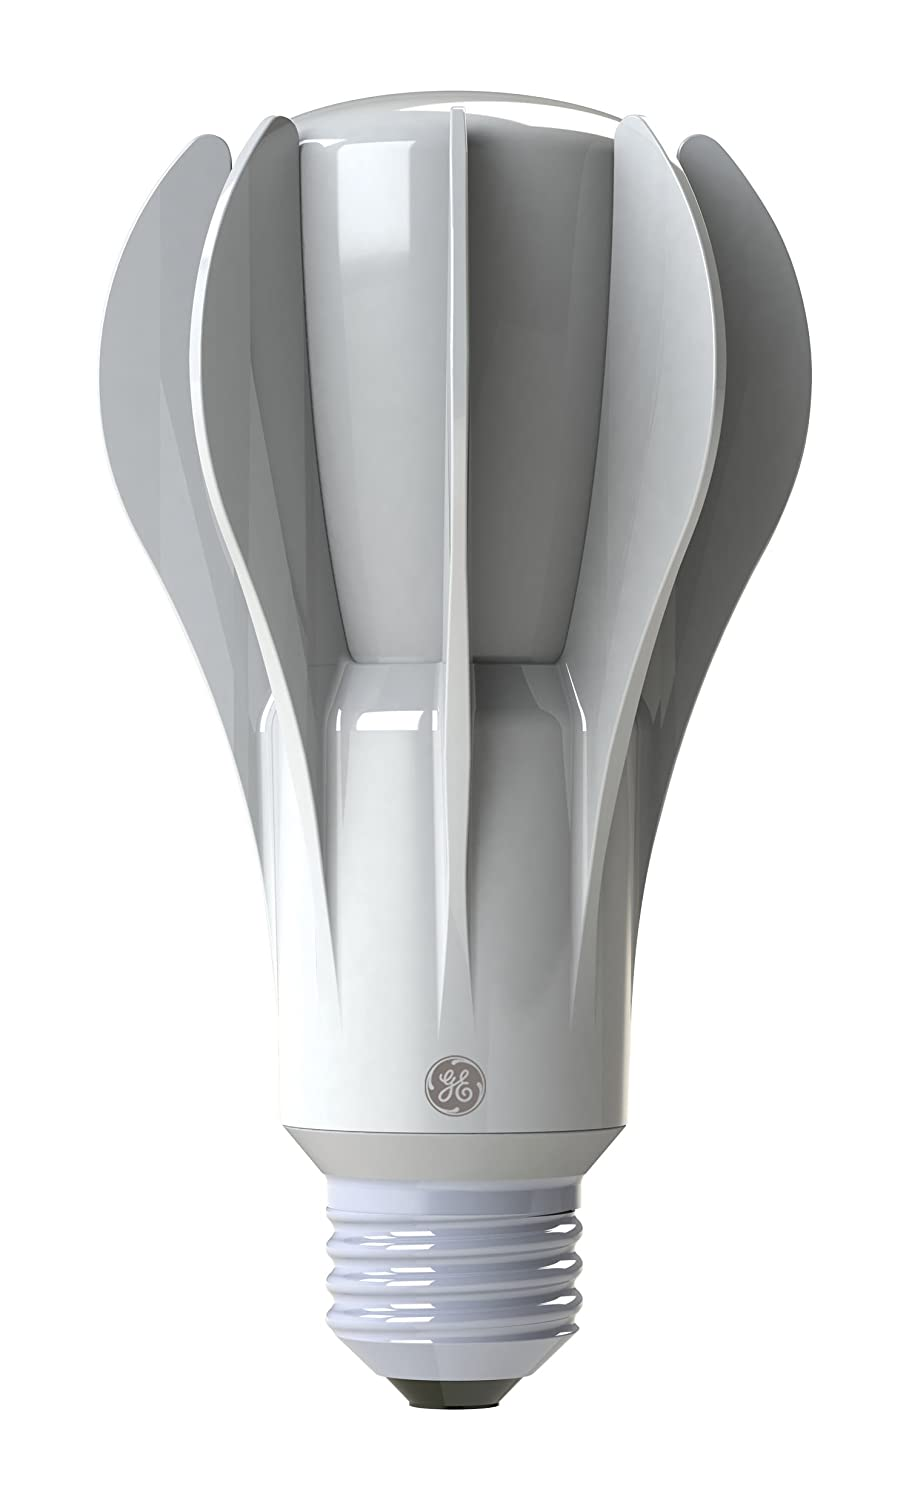 Ge Lighting 92119 3 Way Led 50 100 150 Watt Replacement A21 Bulb With Medium Ba Ebay